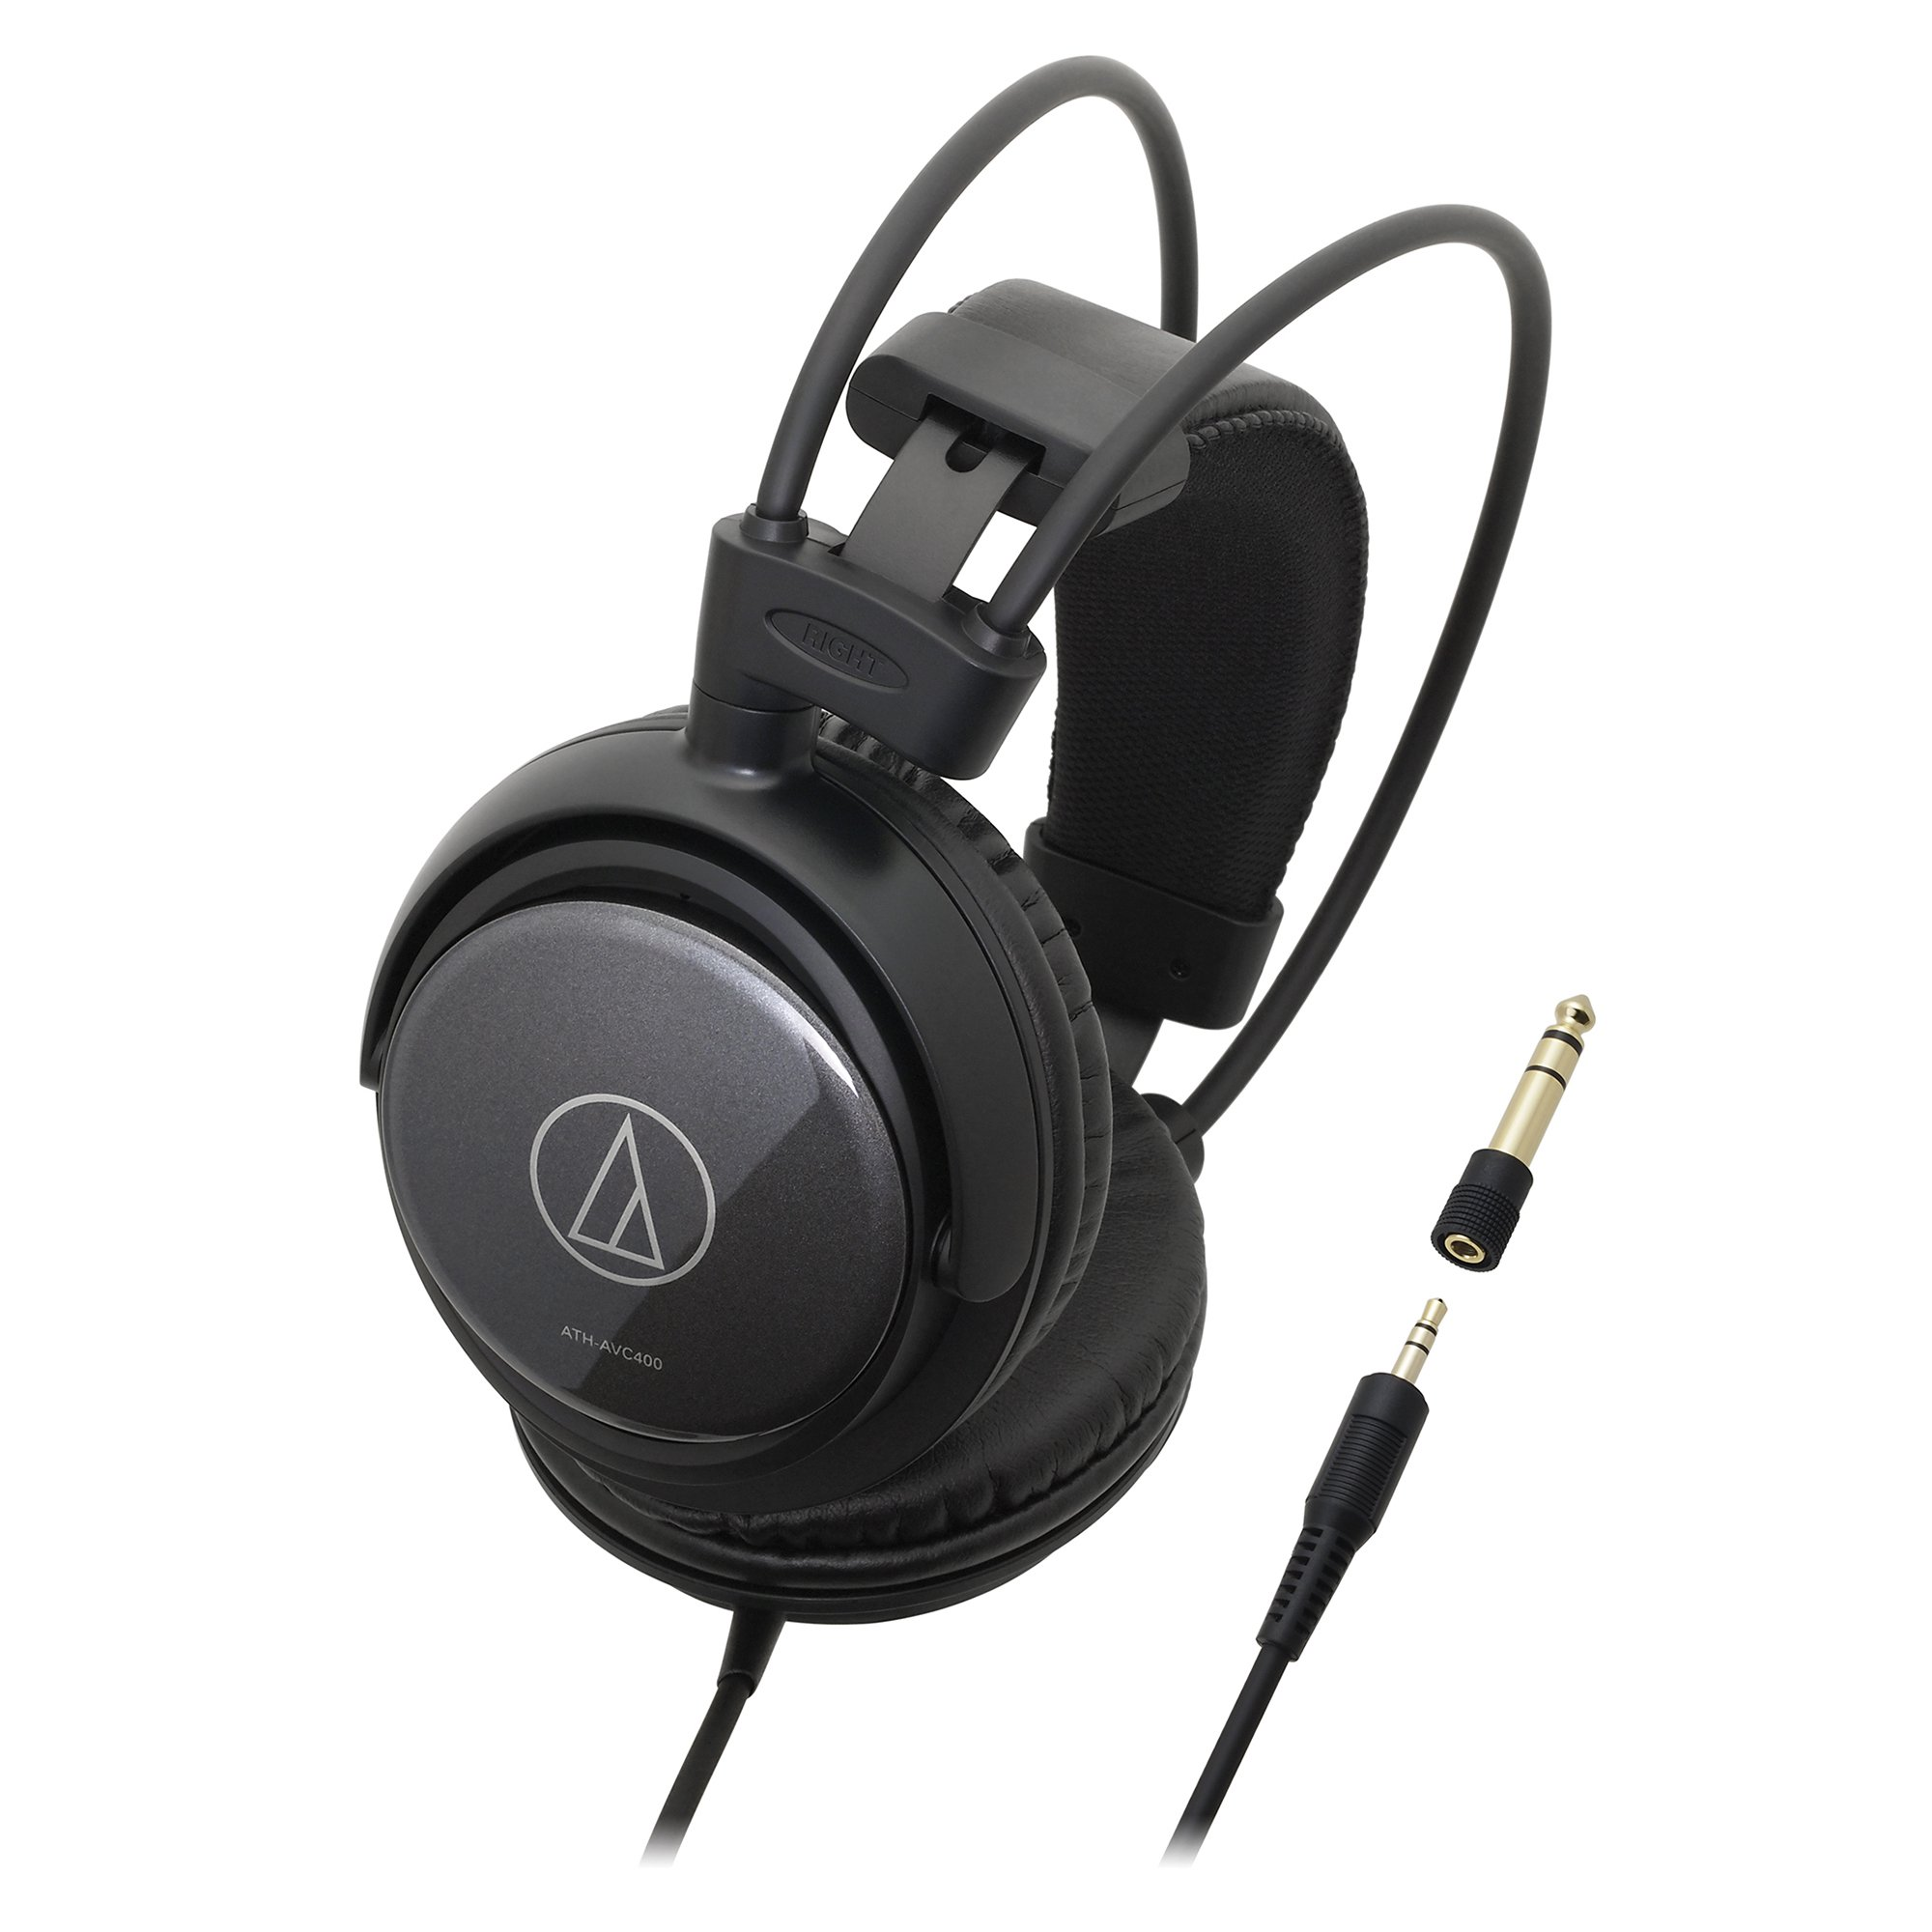 Audio Technica ATH-AVC400 SonicPro Over-Ear Headphones 53mm Drivers